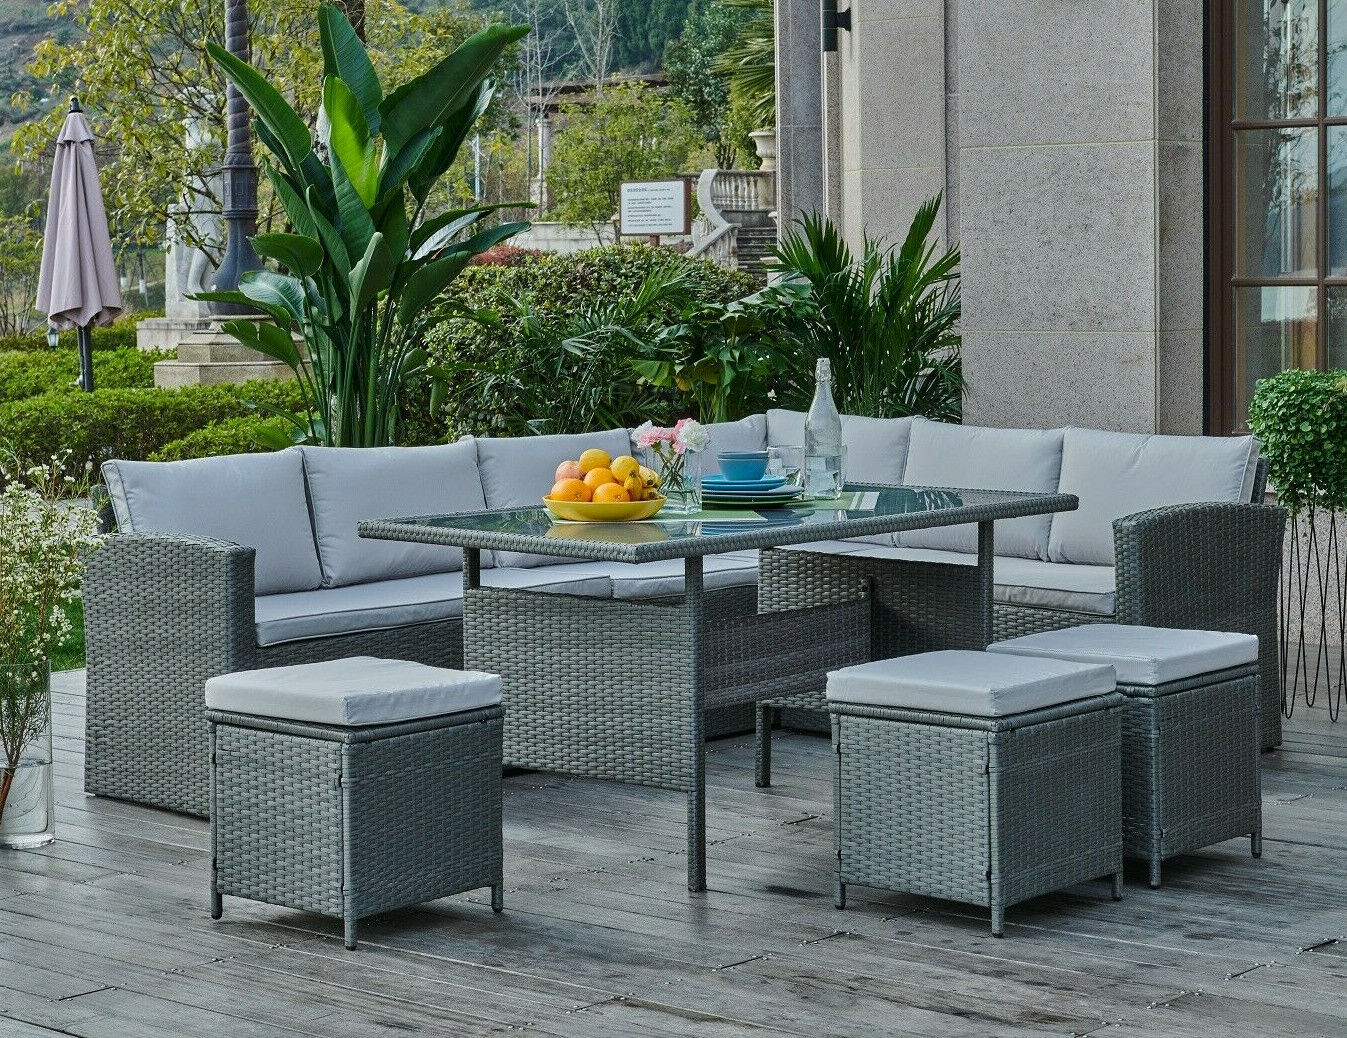 Garden Furniture - Black or Grey Corner Group Sofa Set with Stools PE Rattan Garden Patio Furniture